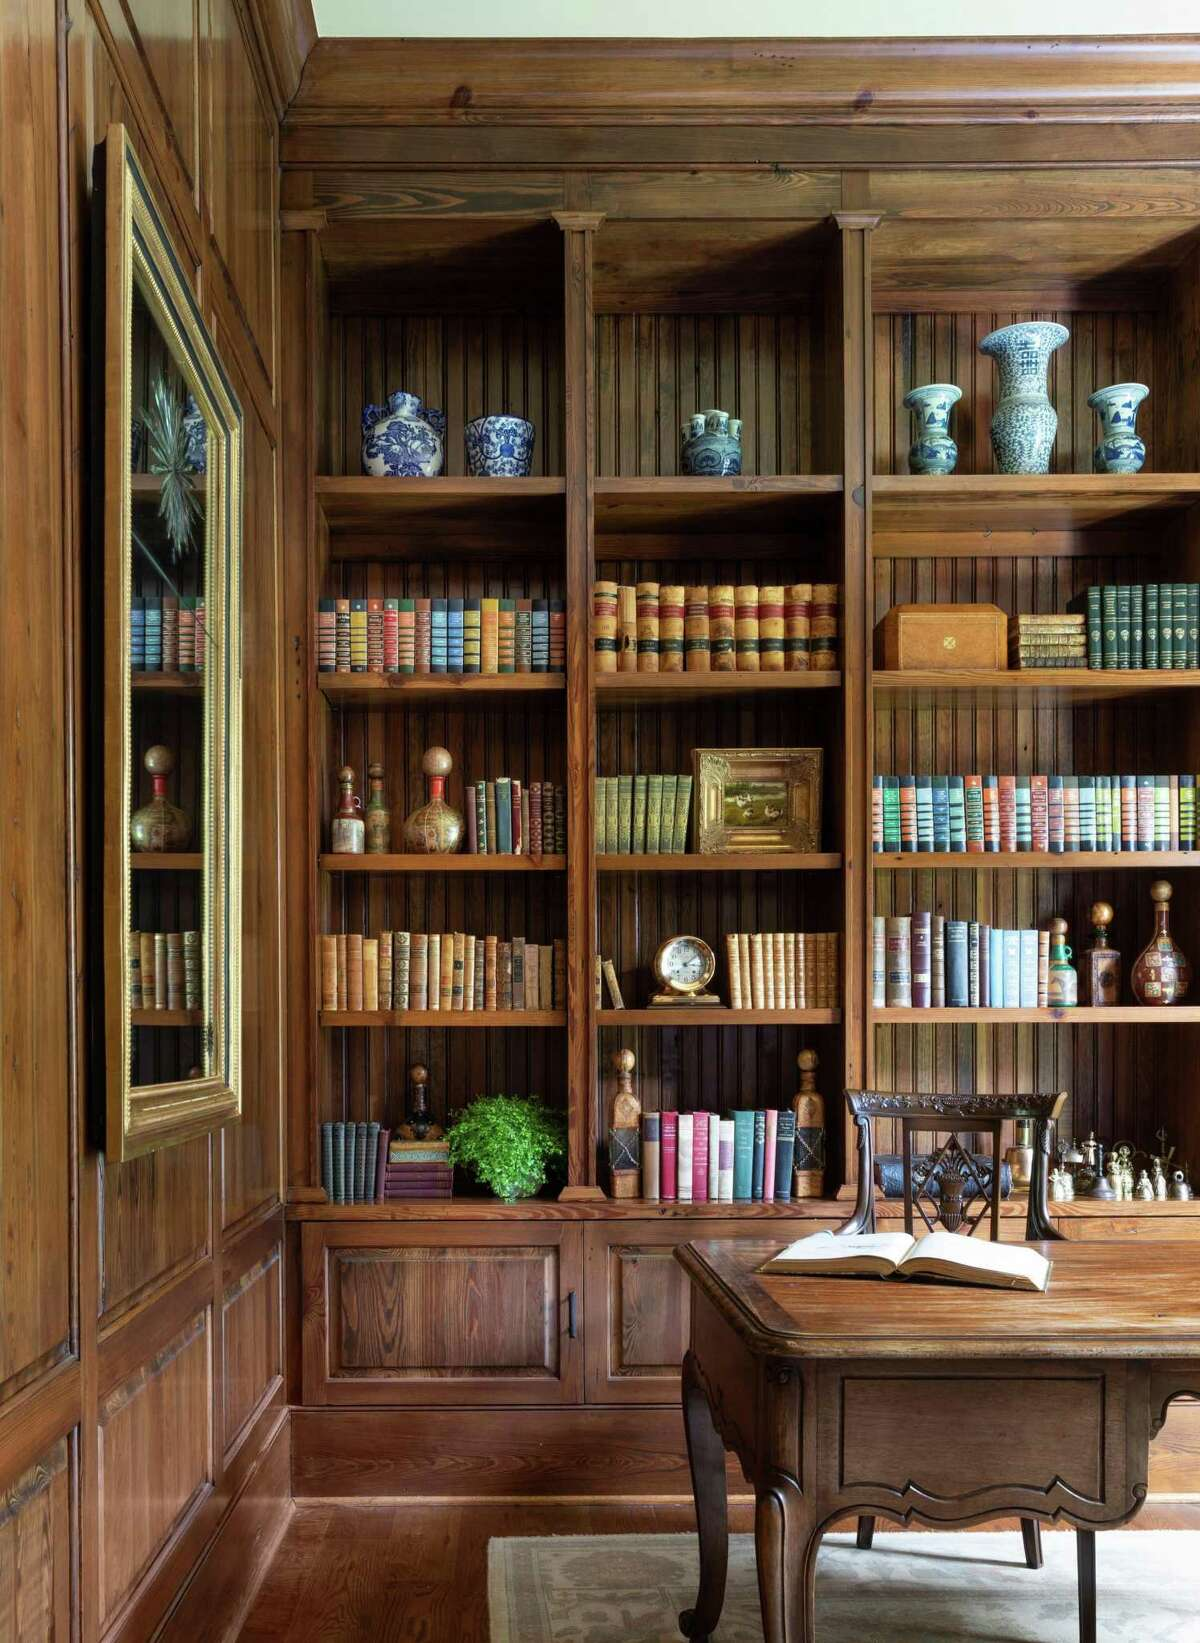 Shelves in this home's library are filled with books, art and collectibles that reflected the homeowner's personality.